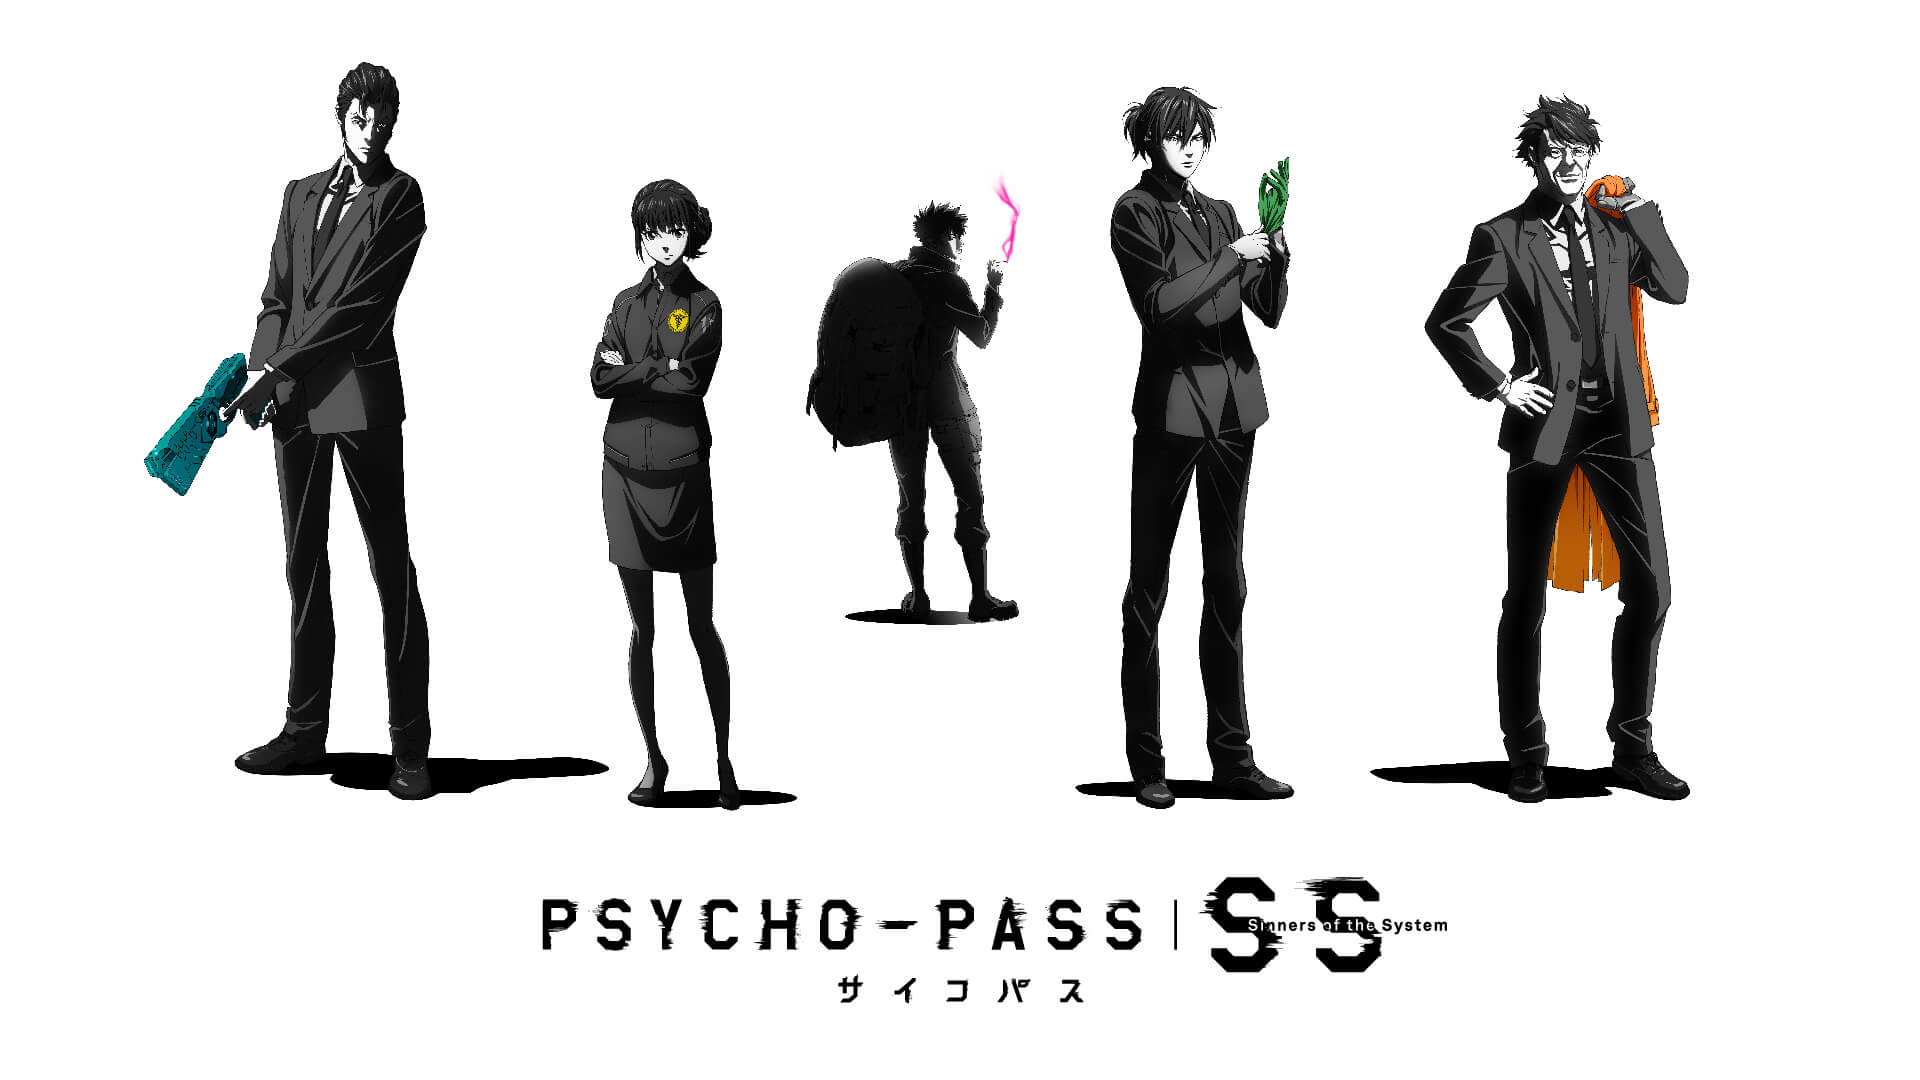 Psycho Pass Three Movies Focusing On Five Characters Will Be